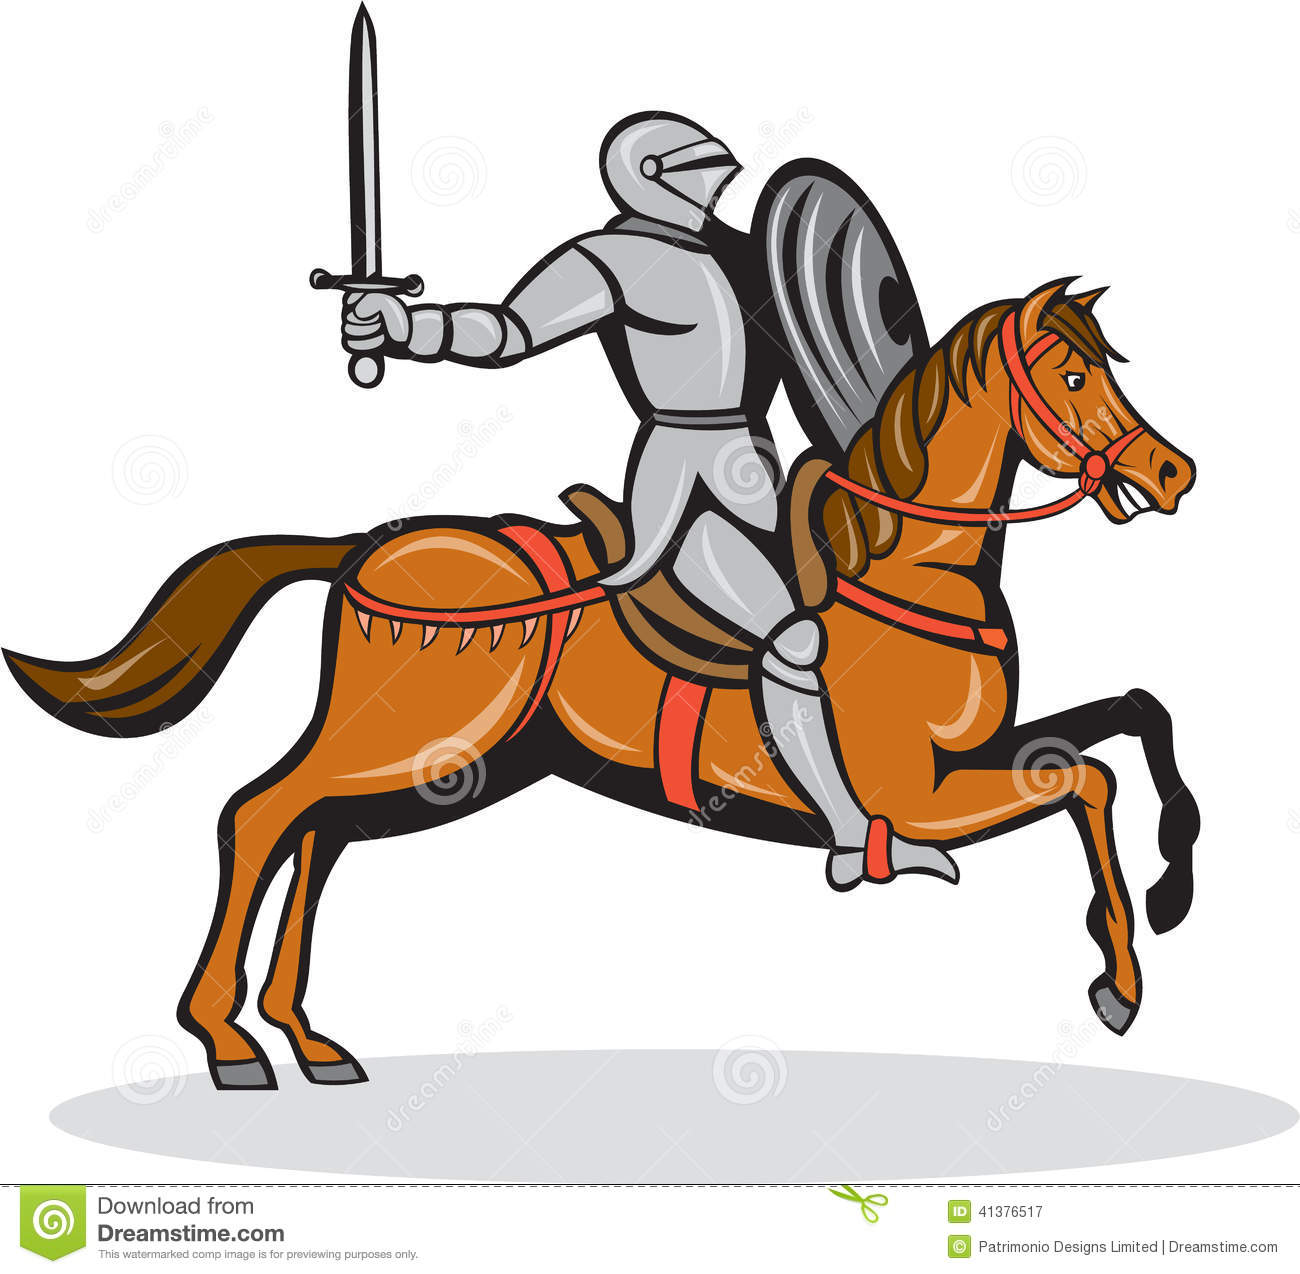 Knight Riding Horse Cartoon Stock Vector - Image: 41376517